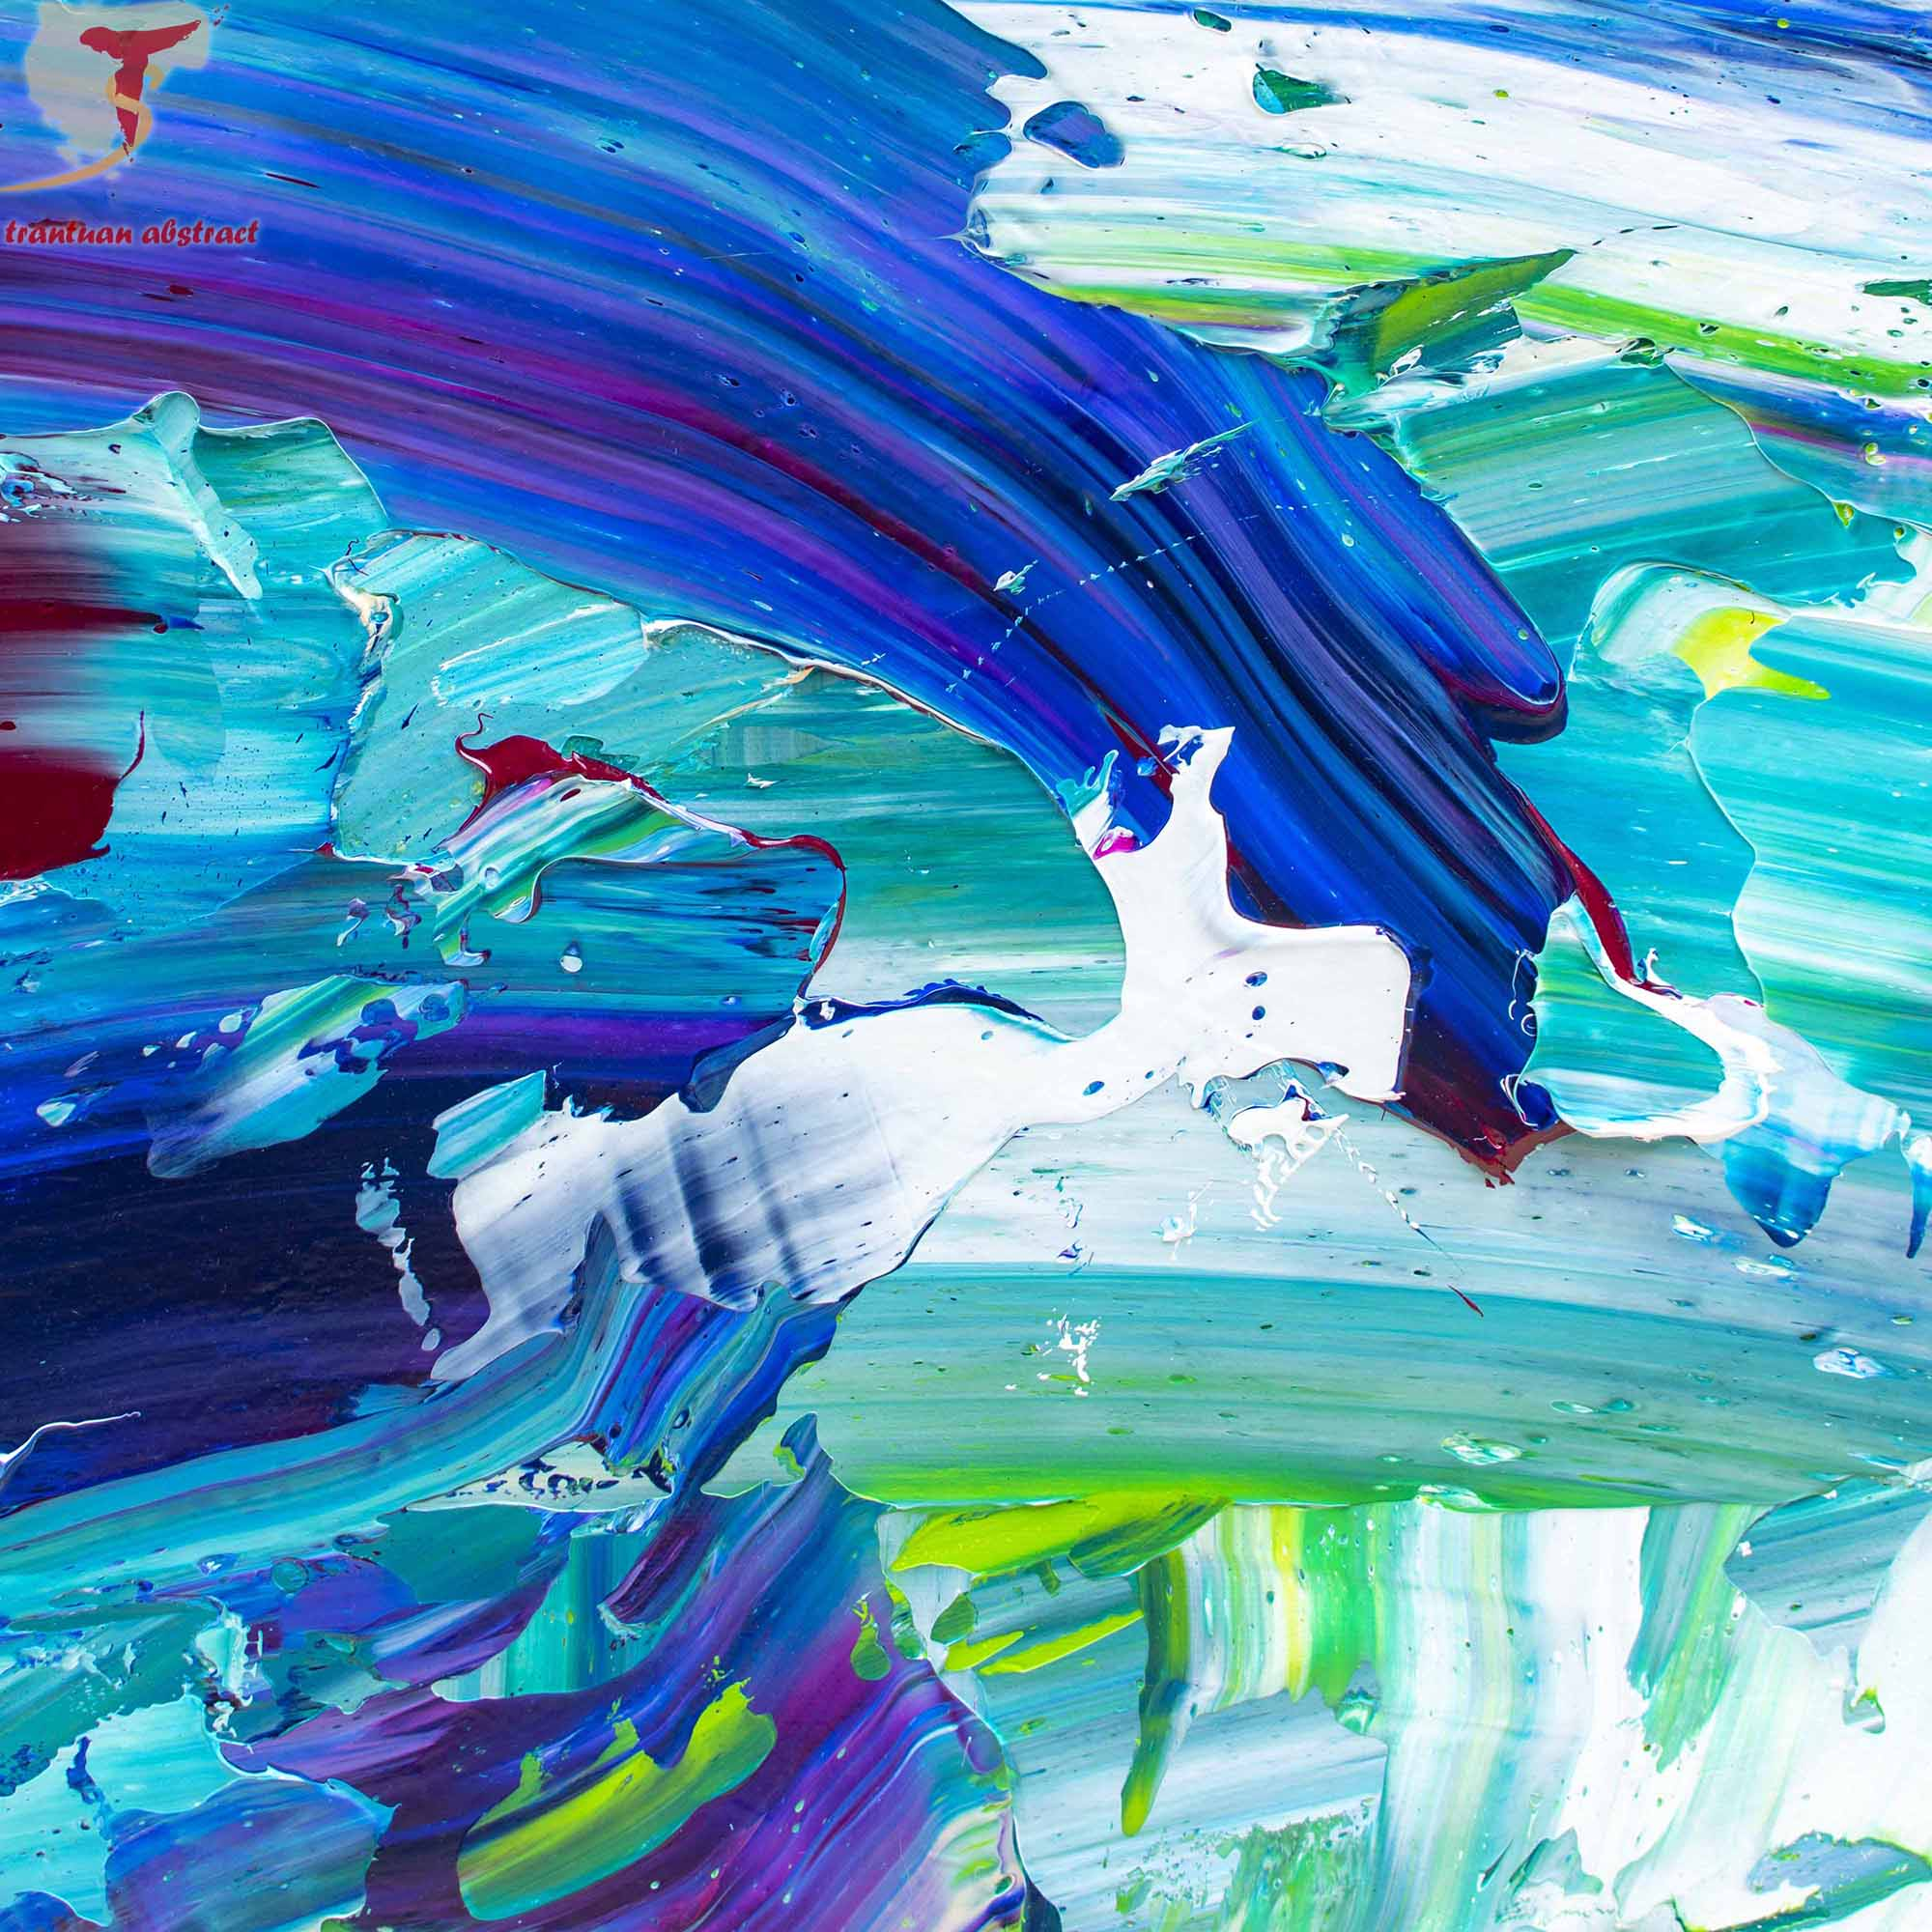 Tran Tuan Abstract Currents of Time 2021 135 x 80 x 5 cm Acrylic on Canvas Painting Detail